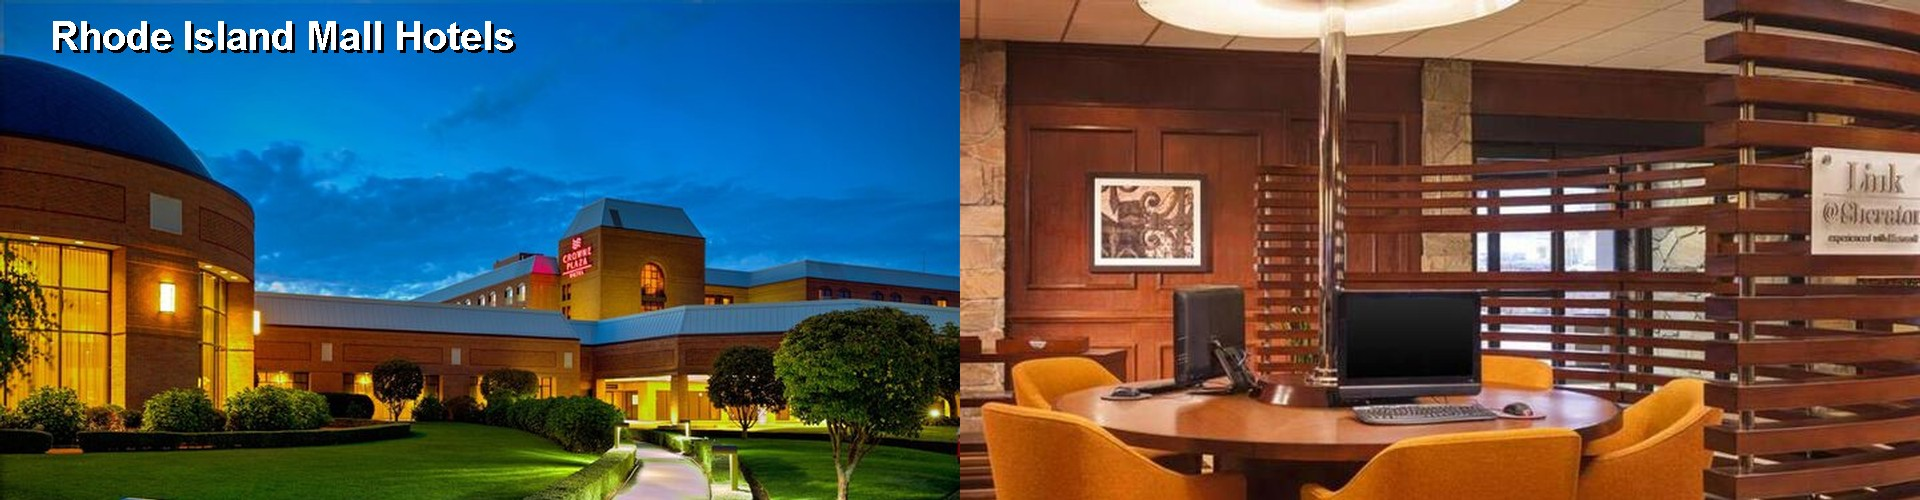 5 Best Hotels near Rhode Island Mall